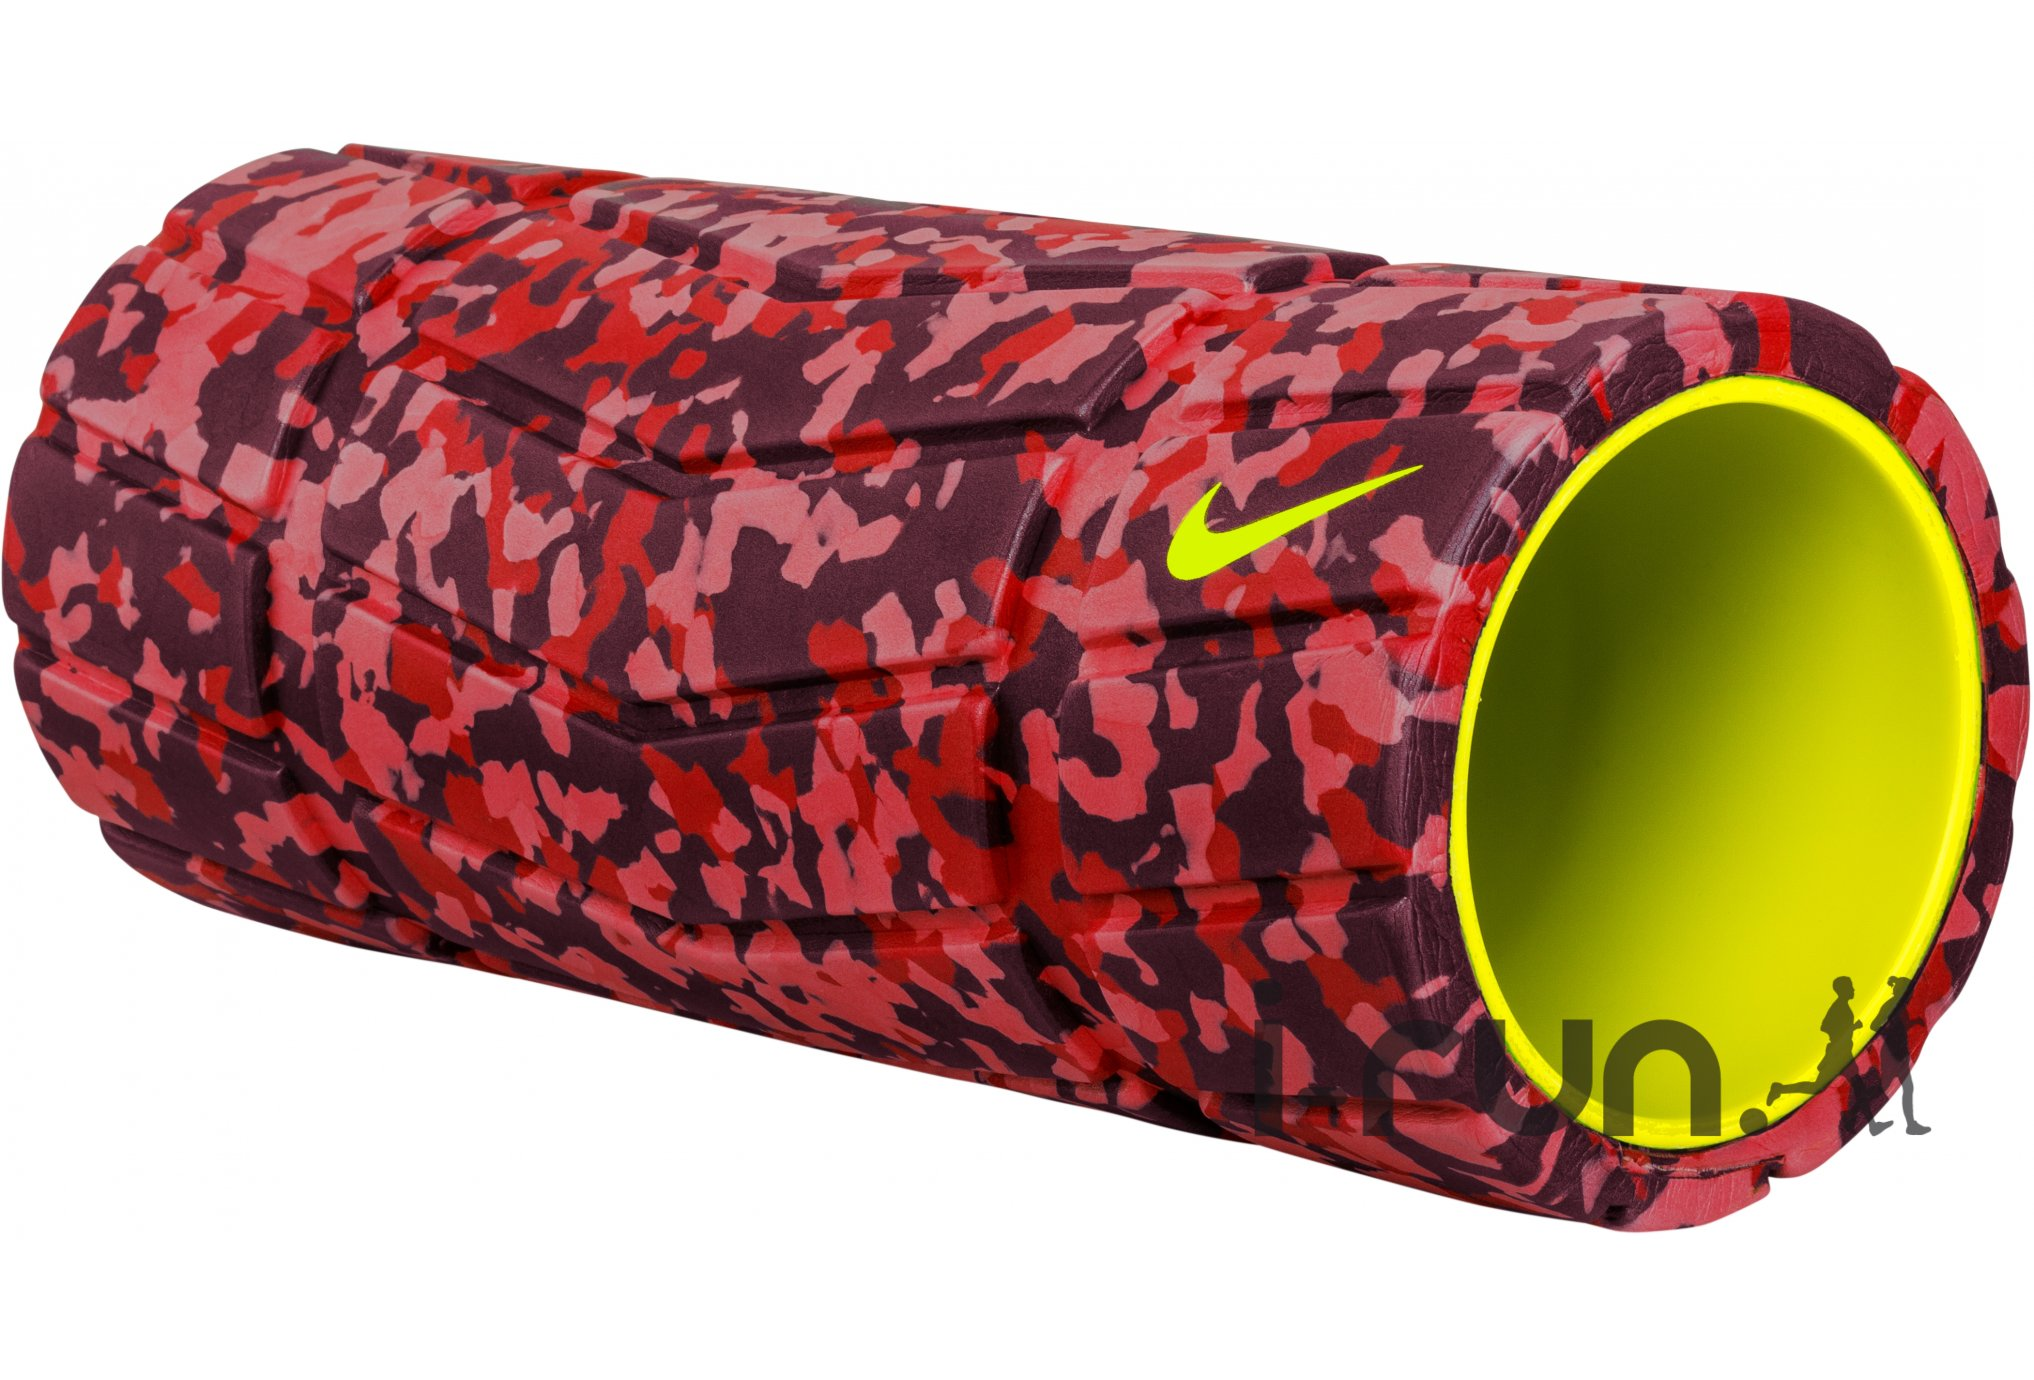 Nike Rouleau Textured Foam Roller Training